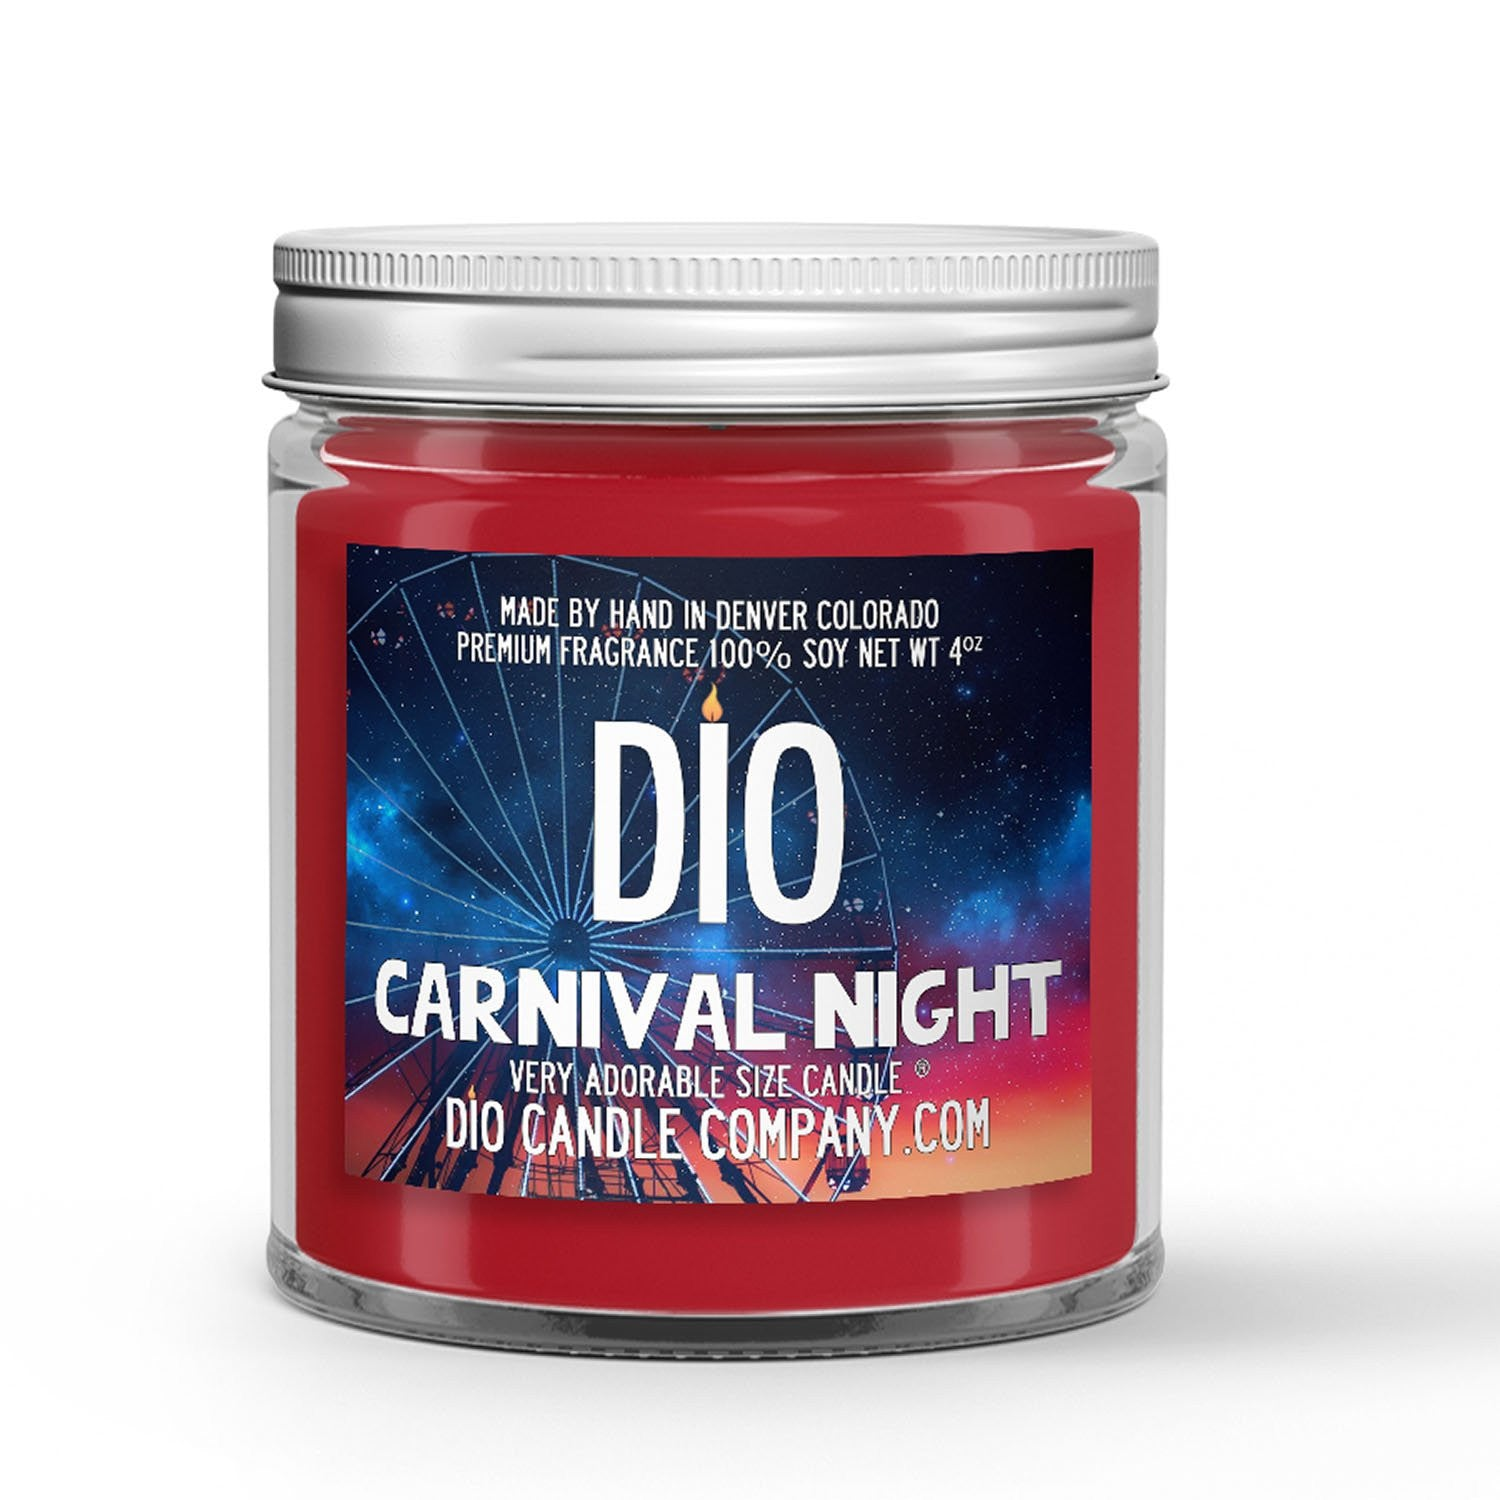 Carnival Night Candle - Candied Apples - Cotton Candy - Tilled Dirt - Fireworks - 4oz Very Adorable Size Candle® - Dio Candle Company